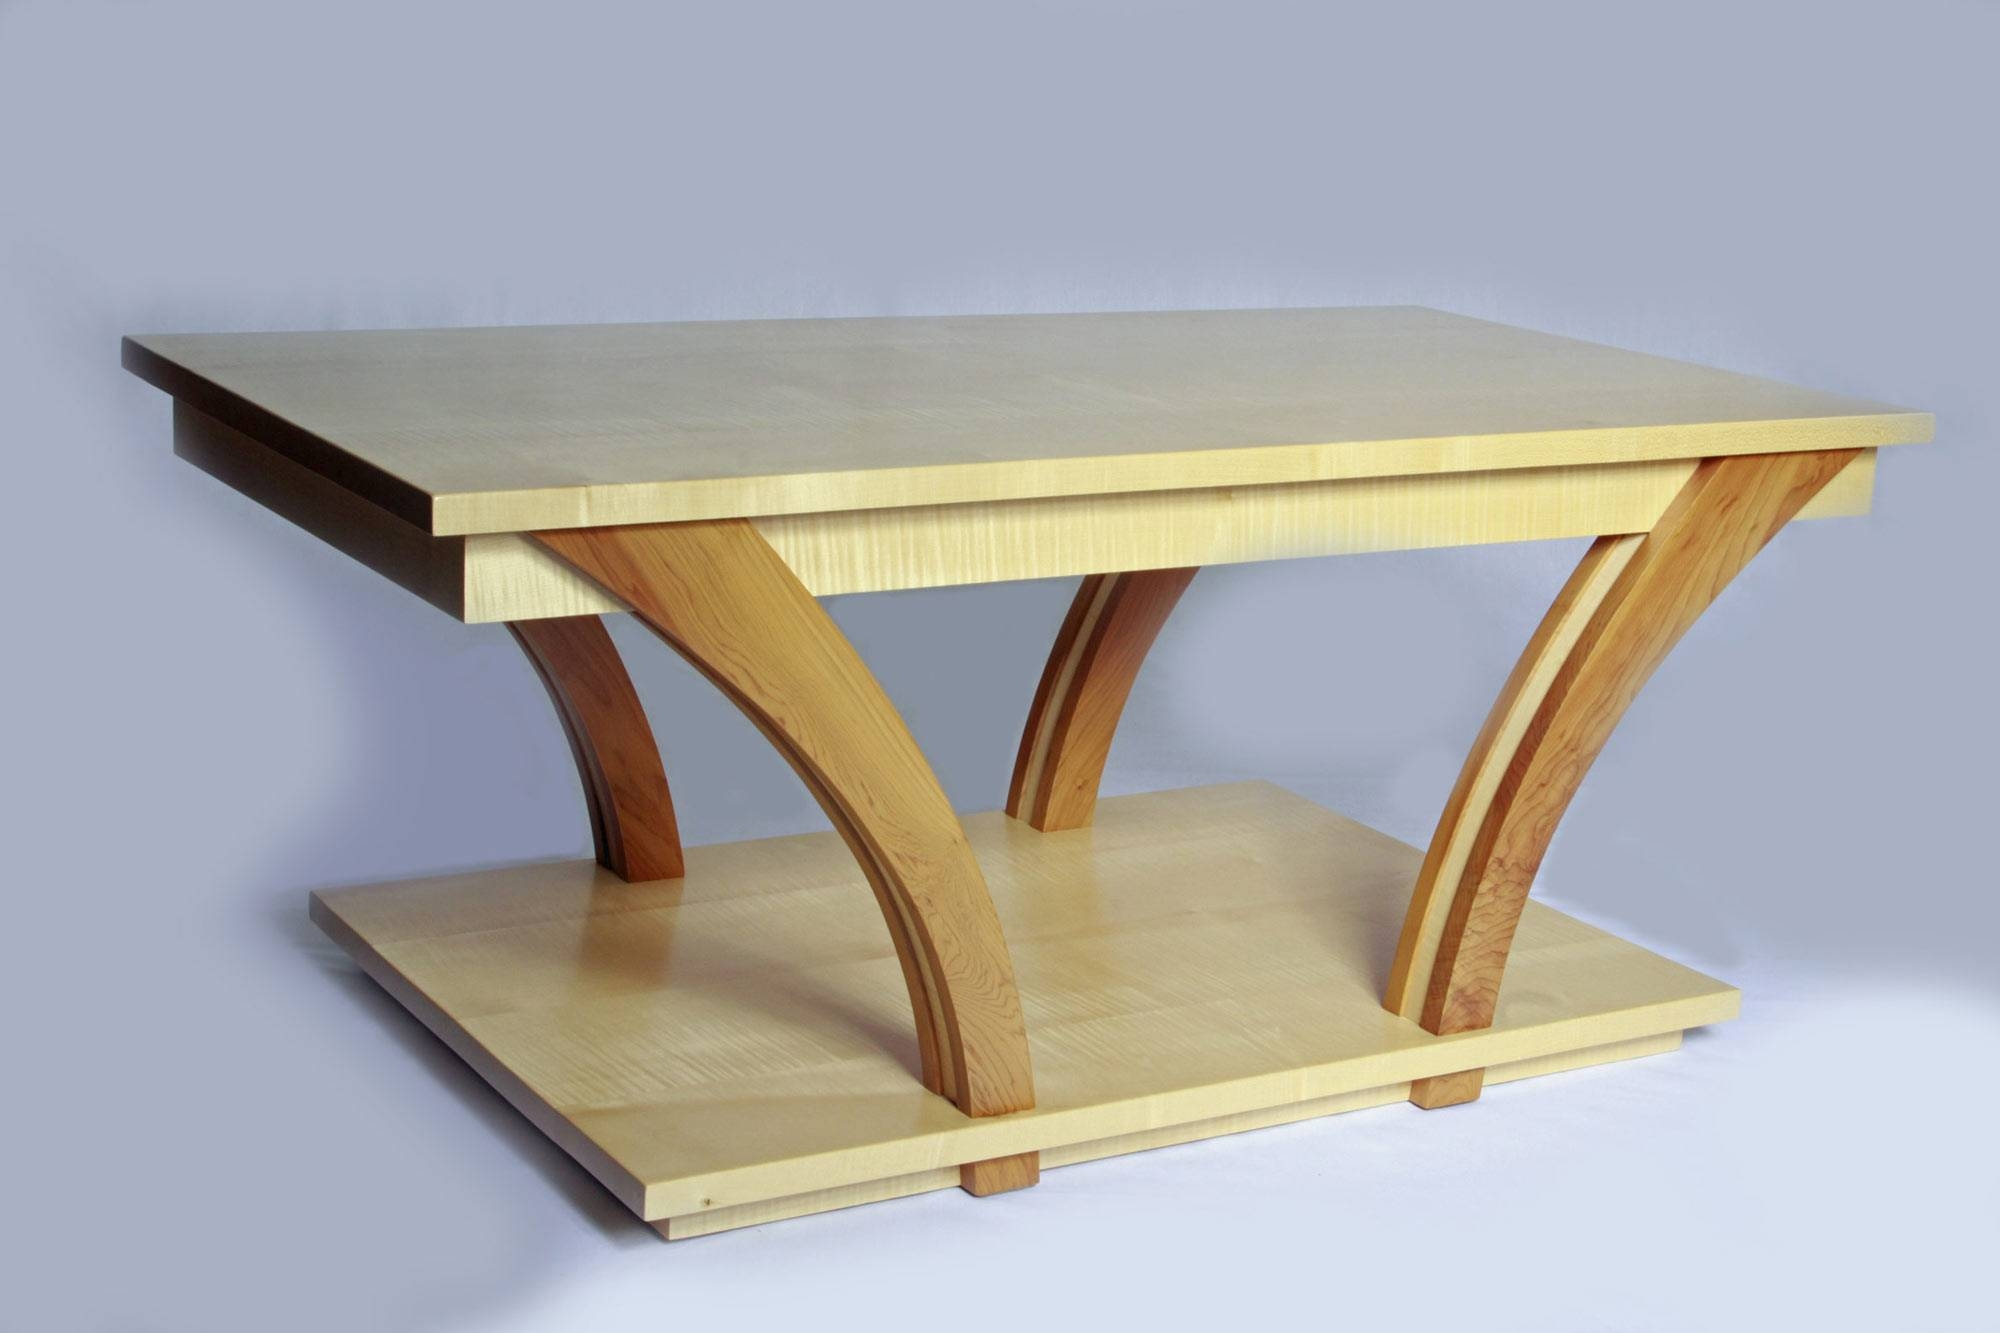 Coffee Table In Ripple Sycamore | Makers' Eye within Bespoke Coffee Tables (Image 13 of 30)